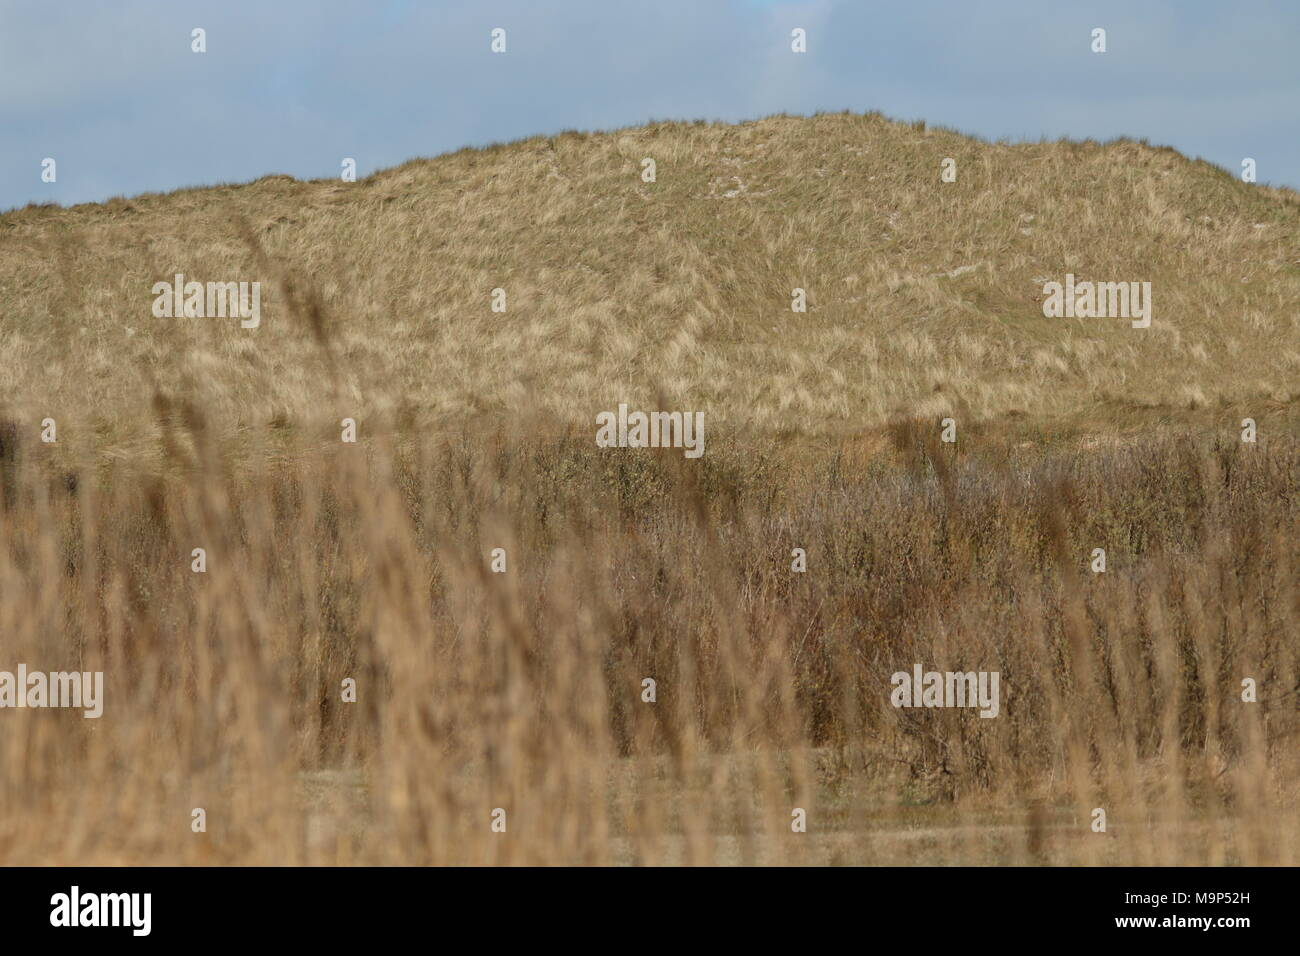 Dunes landscape with marram and bushes - Stock Image